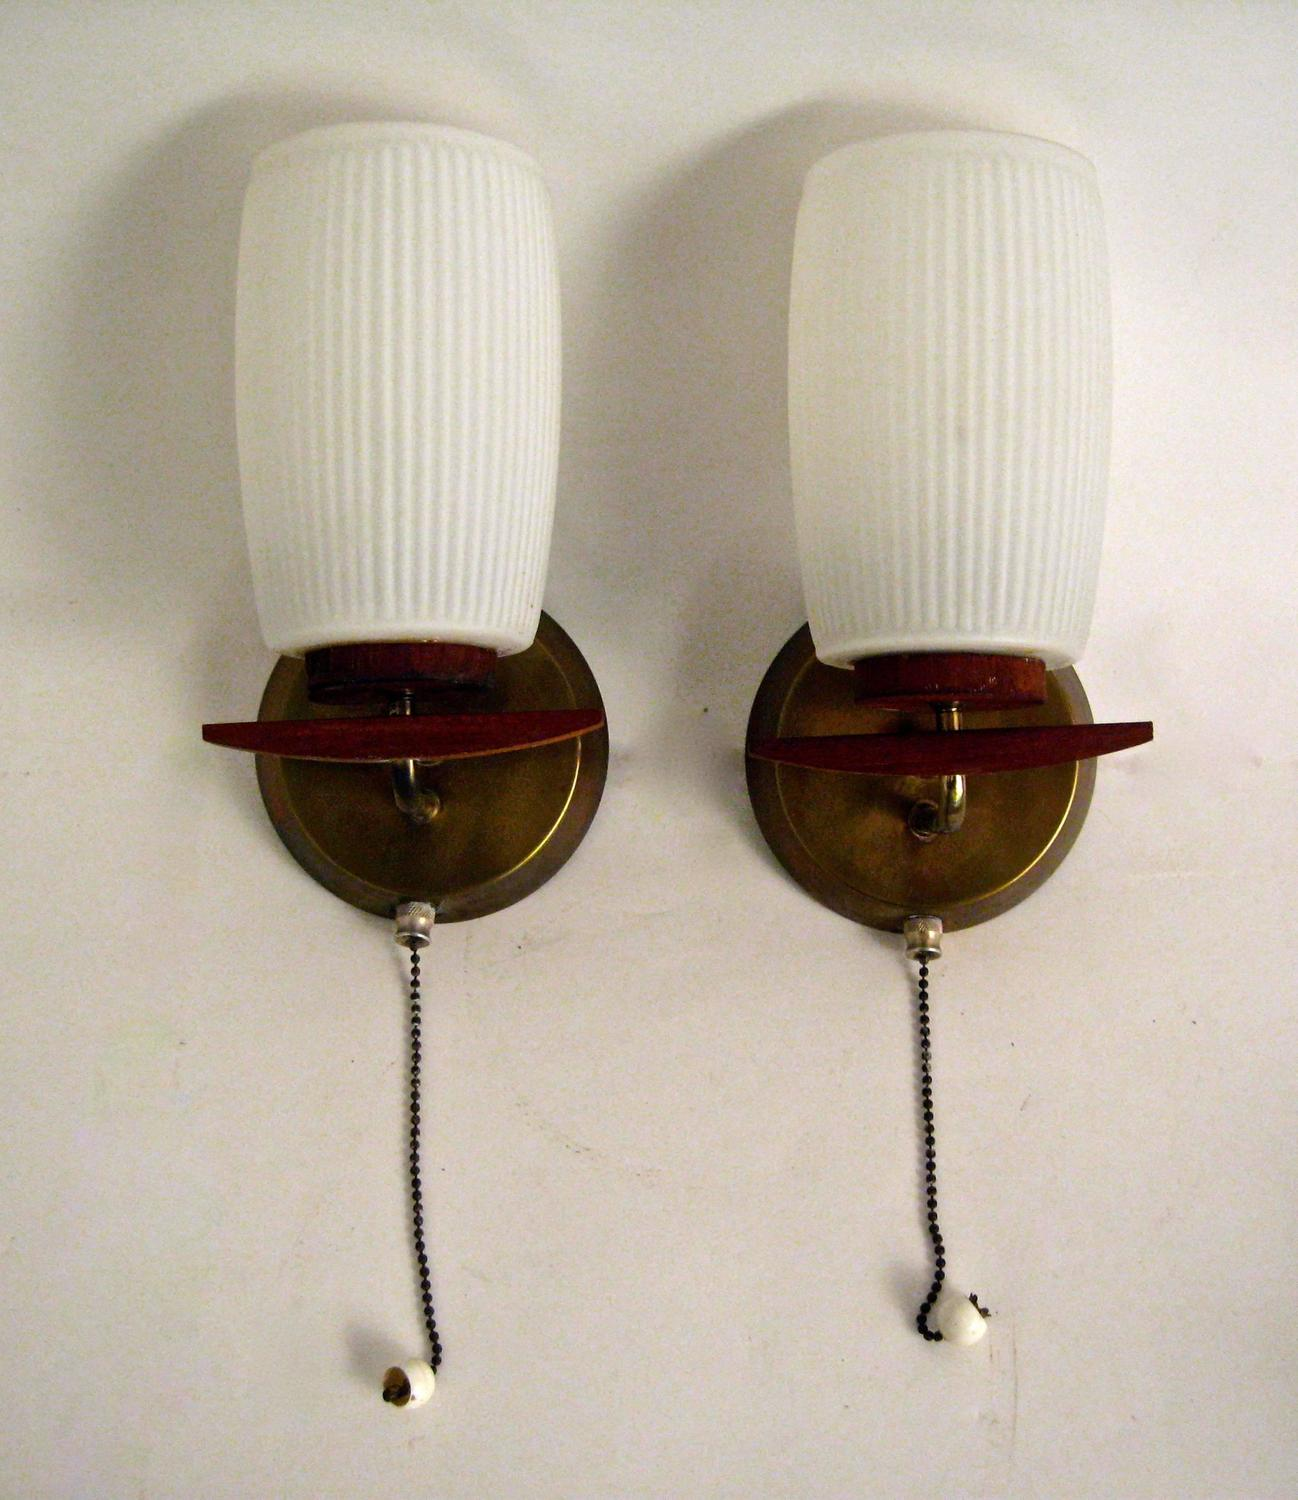 Wall Sconces Mid Century Modern : Mid-Century Modern German Sconces For Sale at 1stdibs